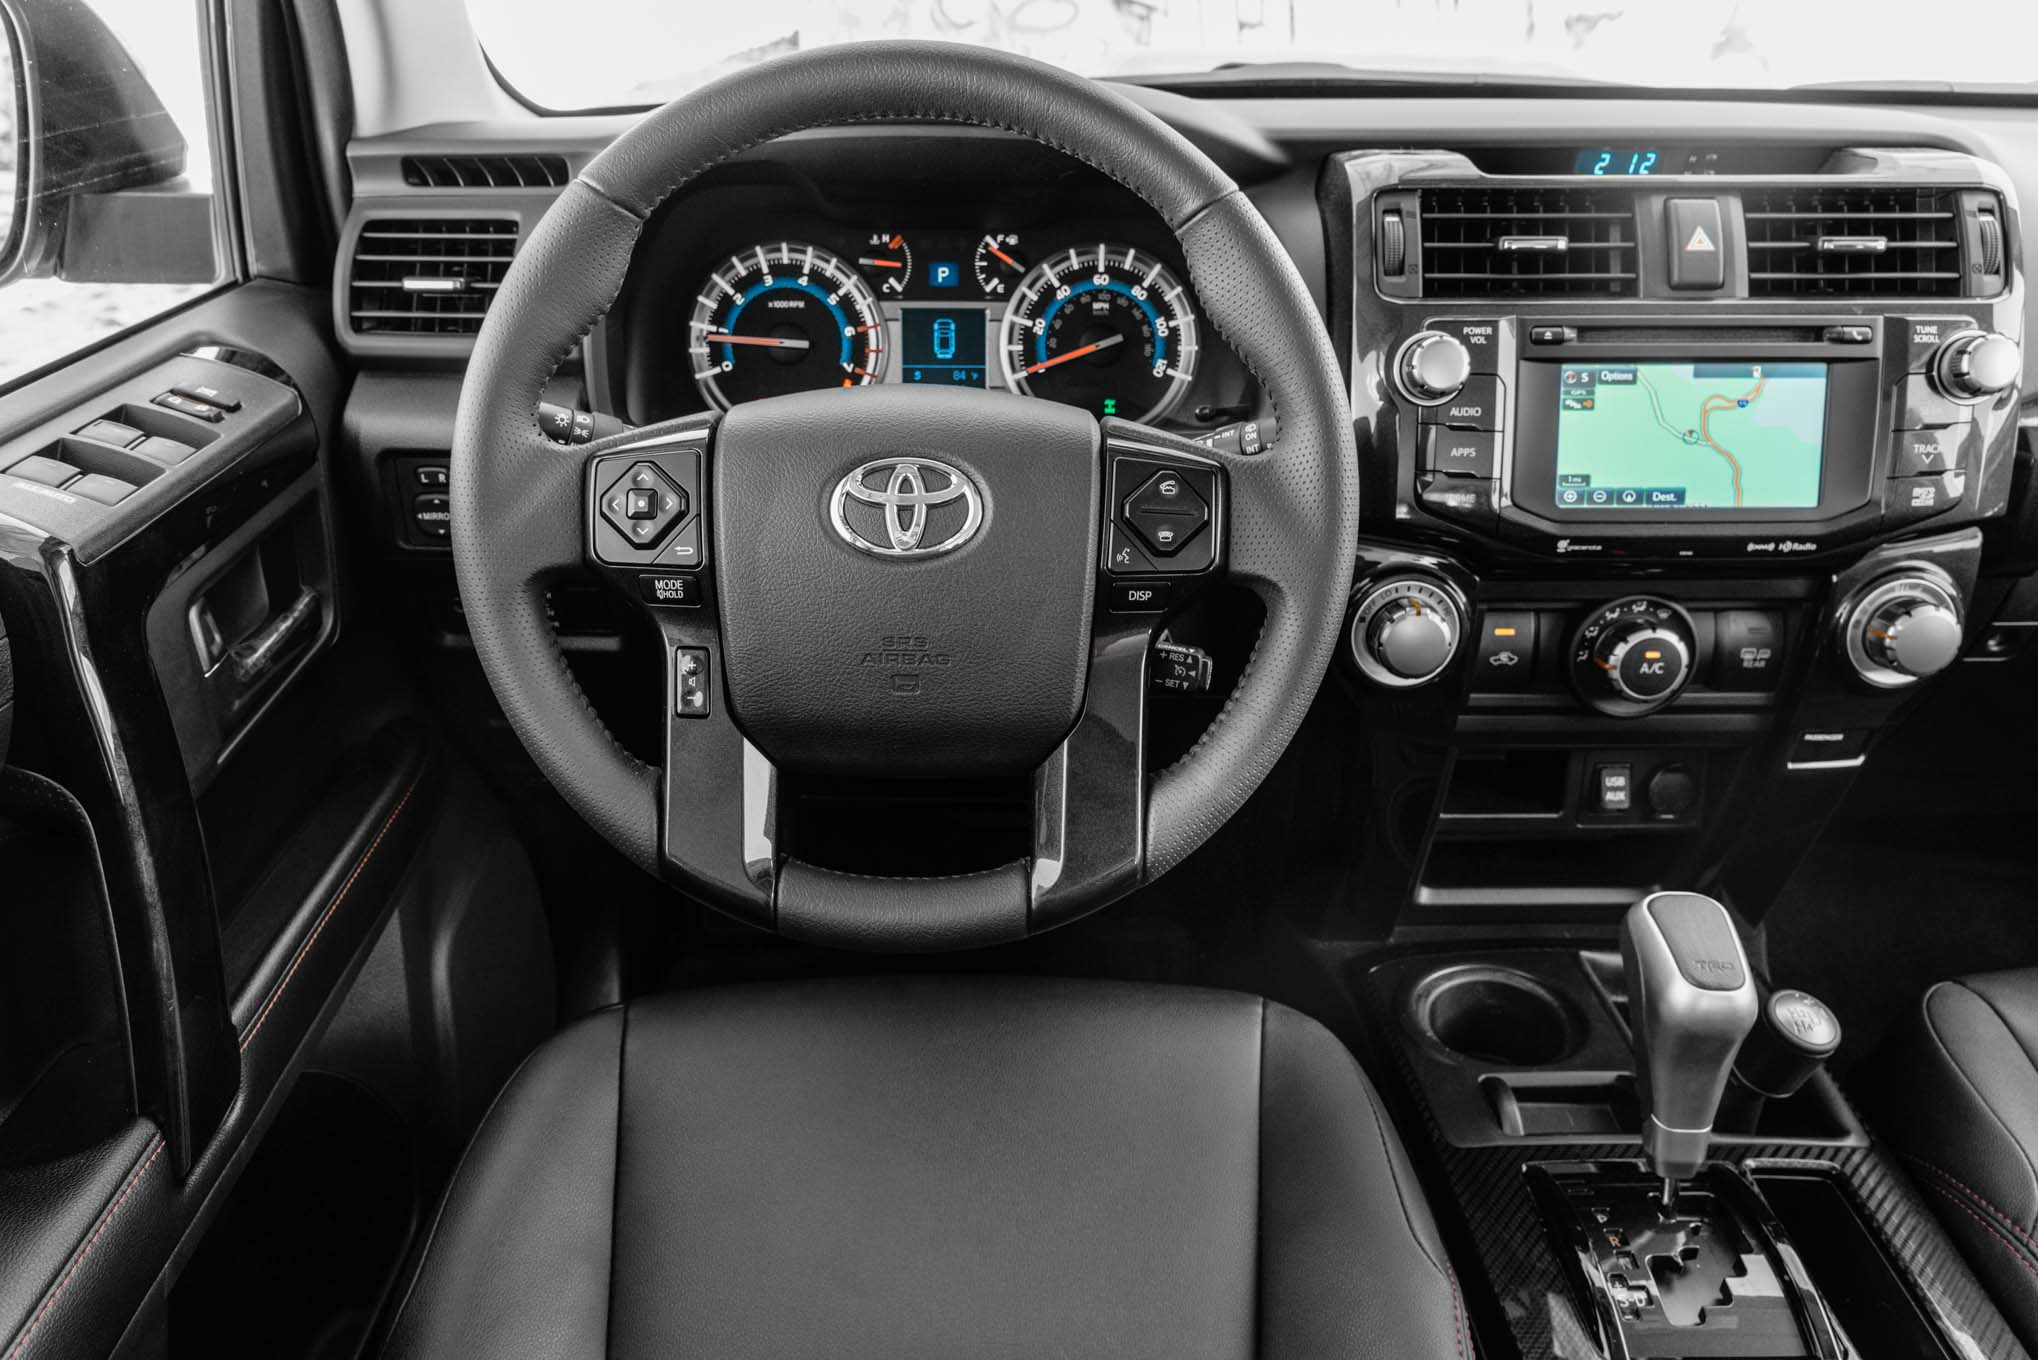 Toyota Recalls About 645,000 Vehicles Because of Possible Airbag